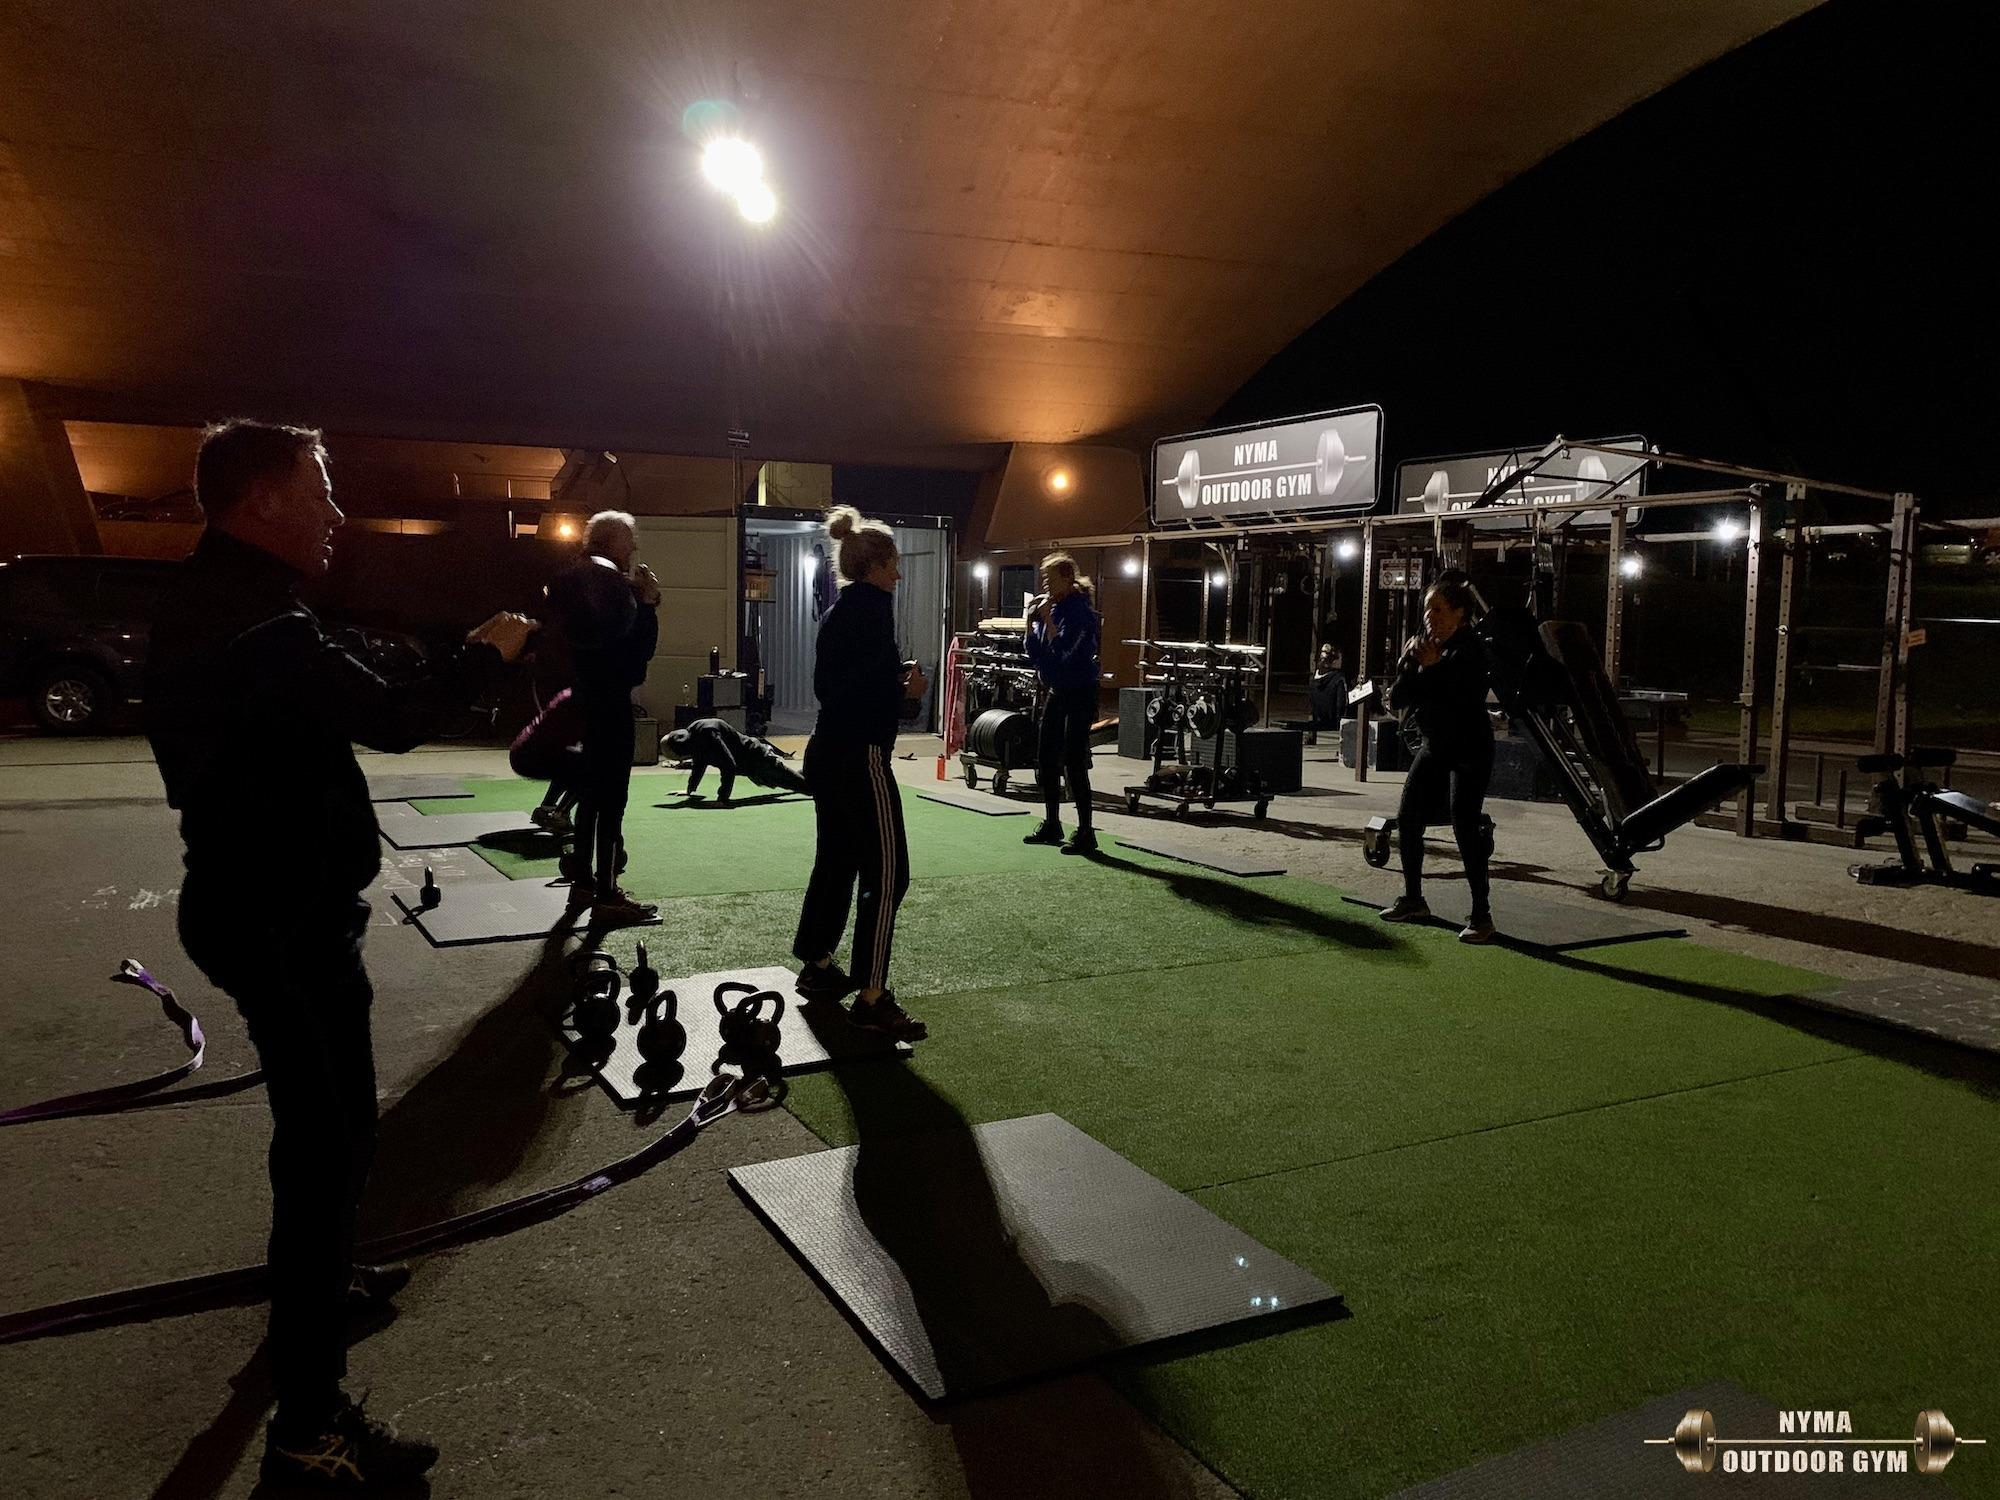 NYMA OUTDOOR GYM 07-01-2020